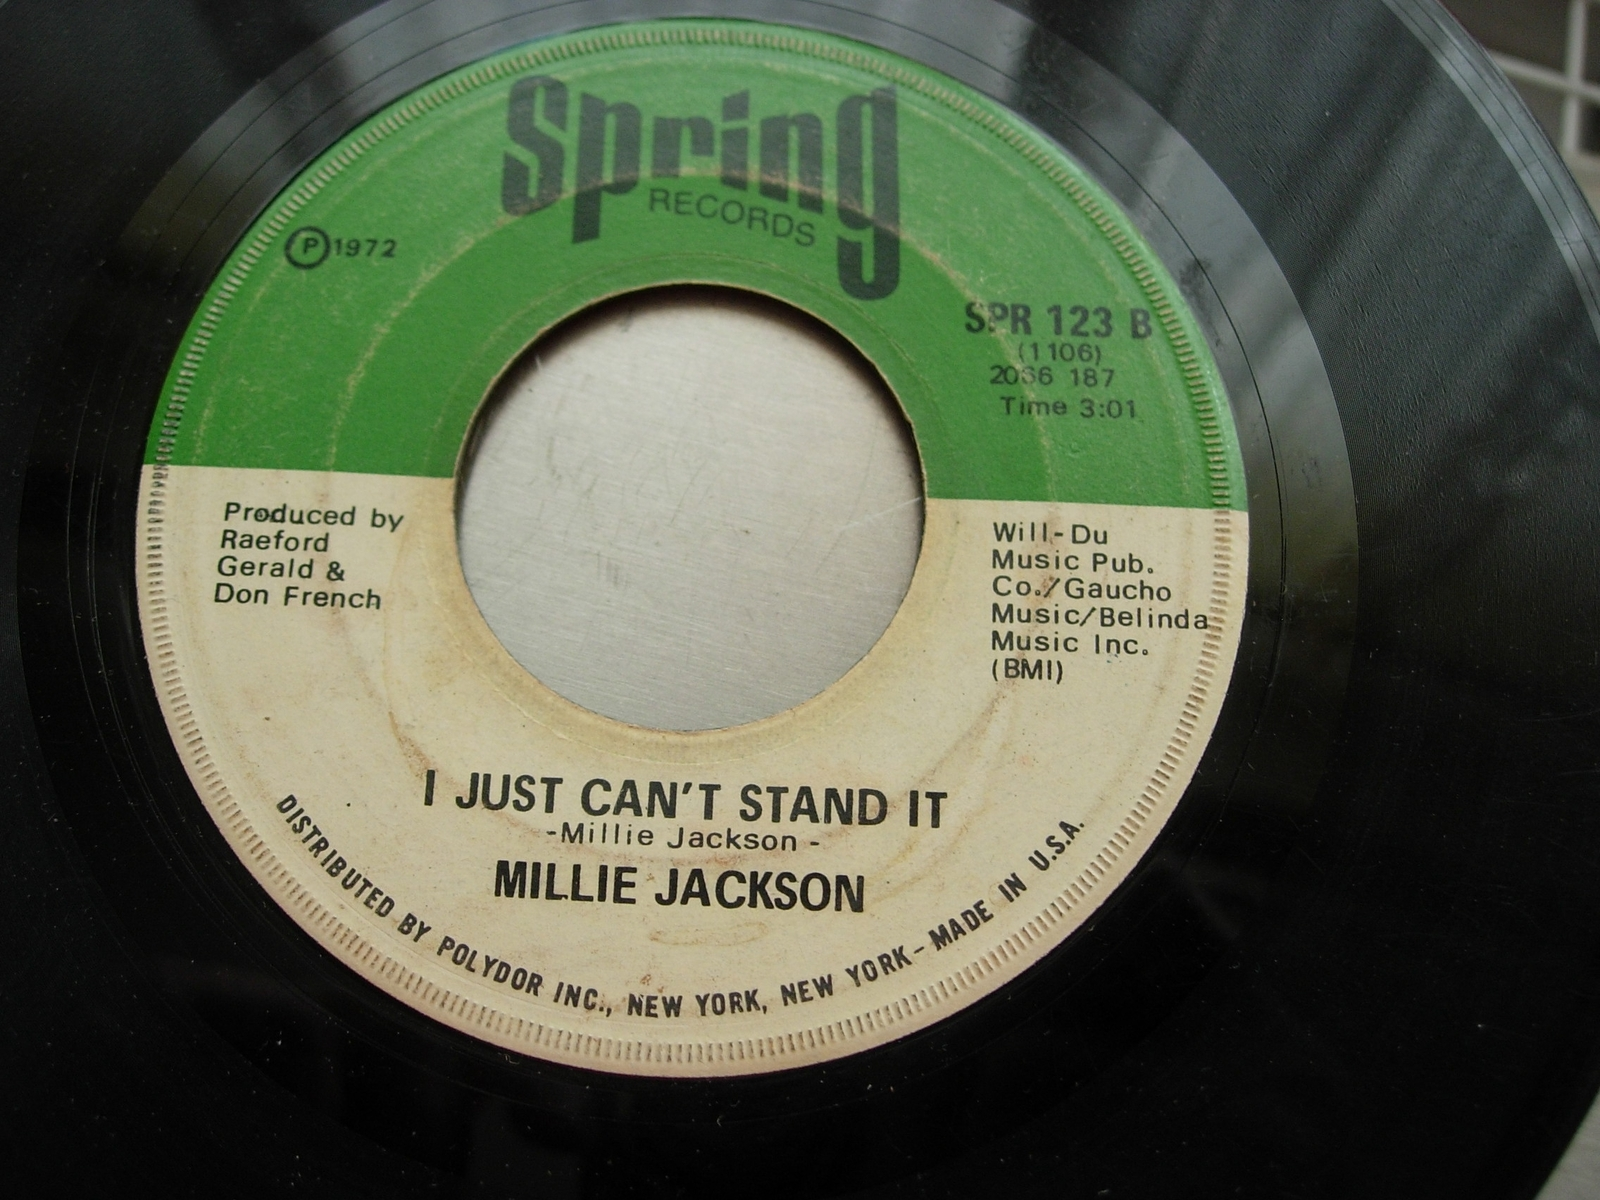 Millie Jackson - Ask What You Want / I Just Can't Stand It - Spring SPR 123